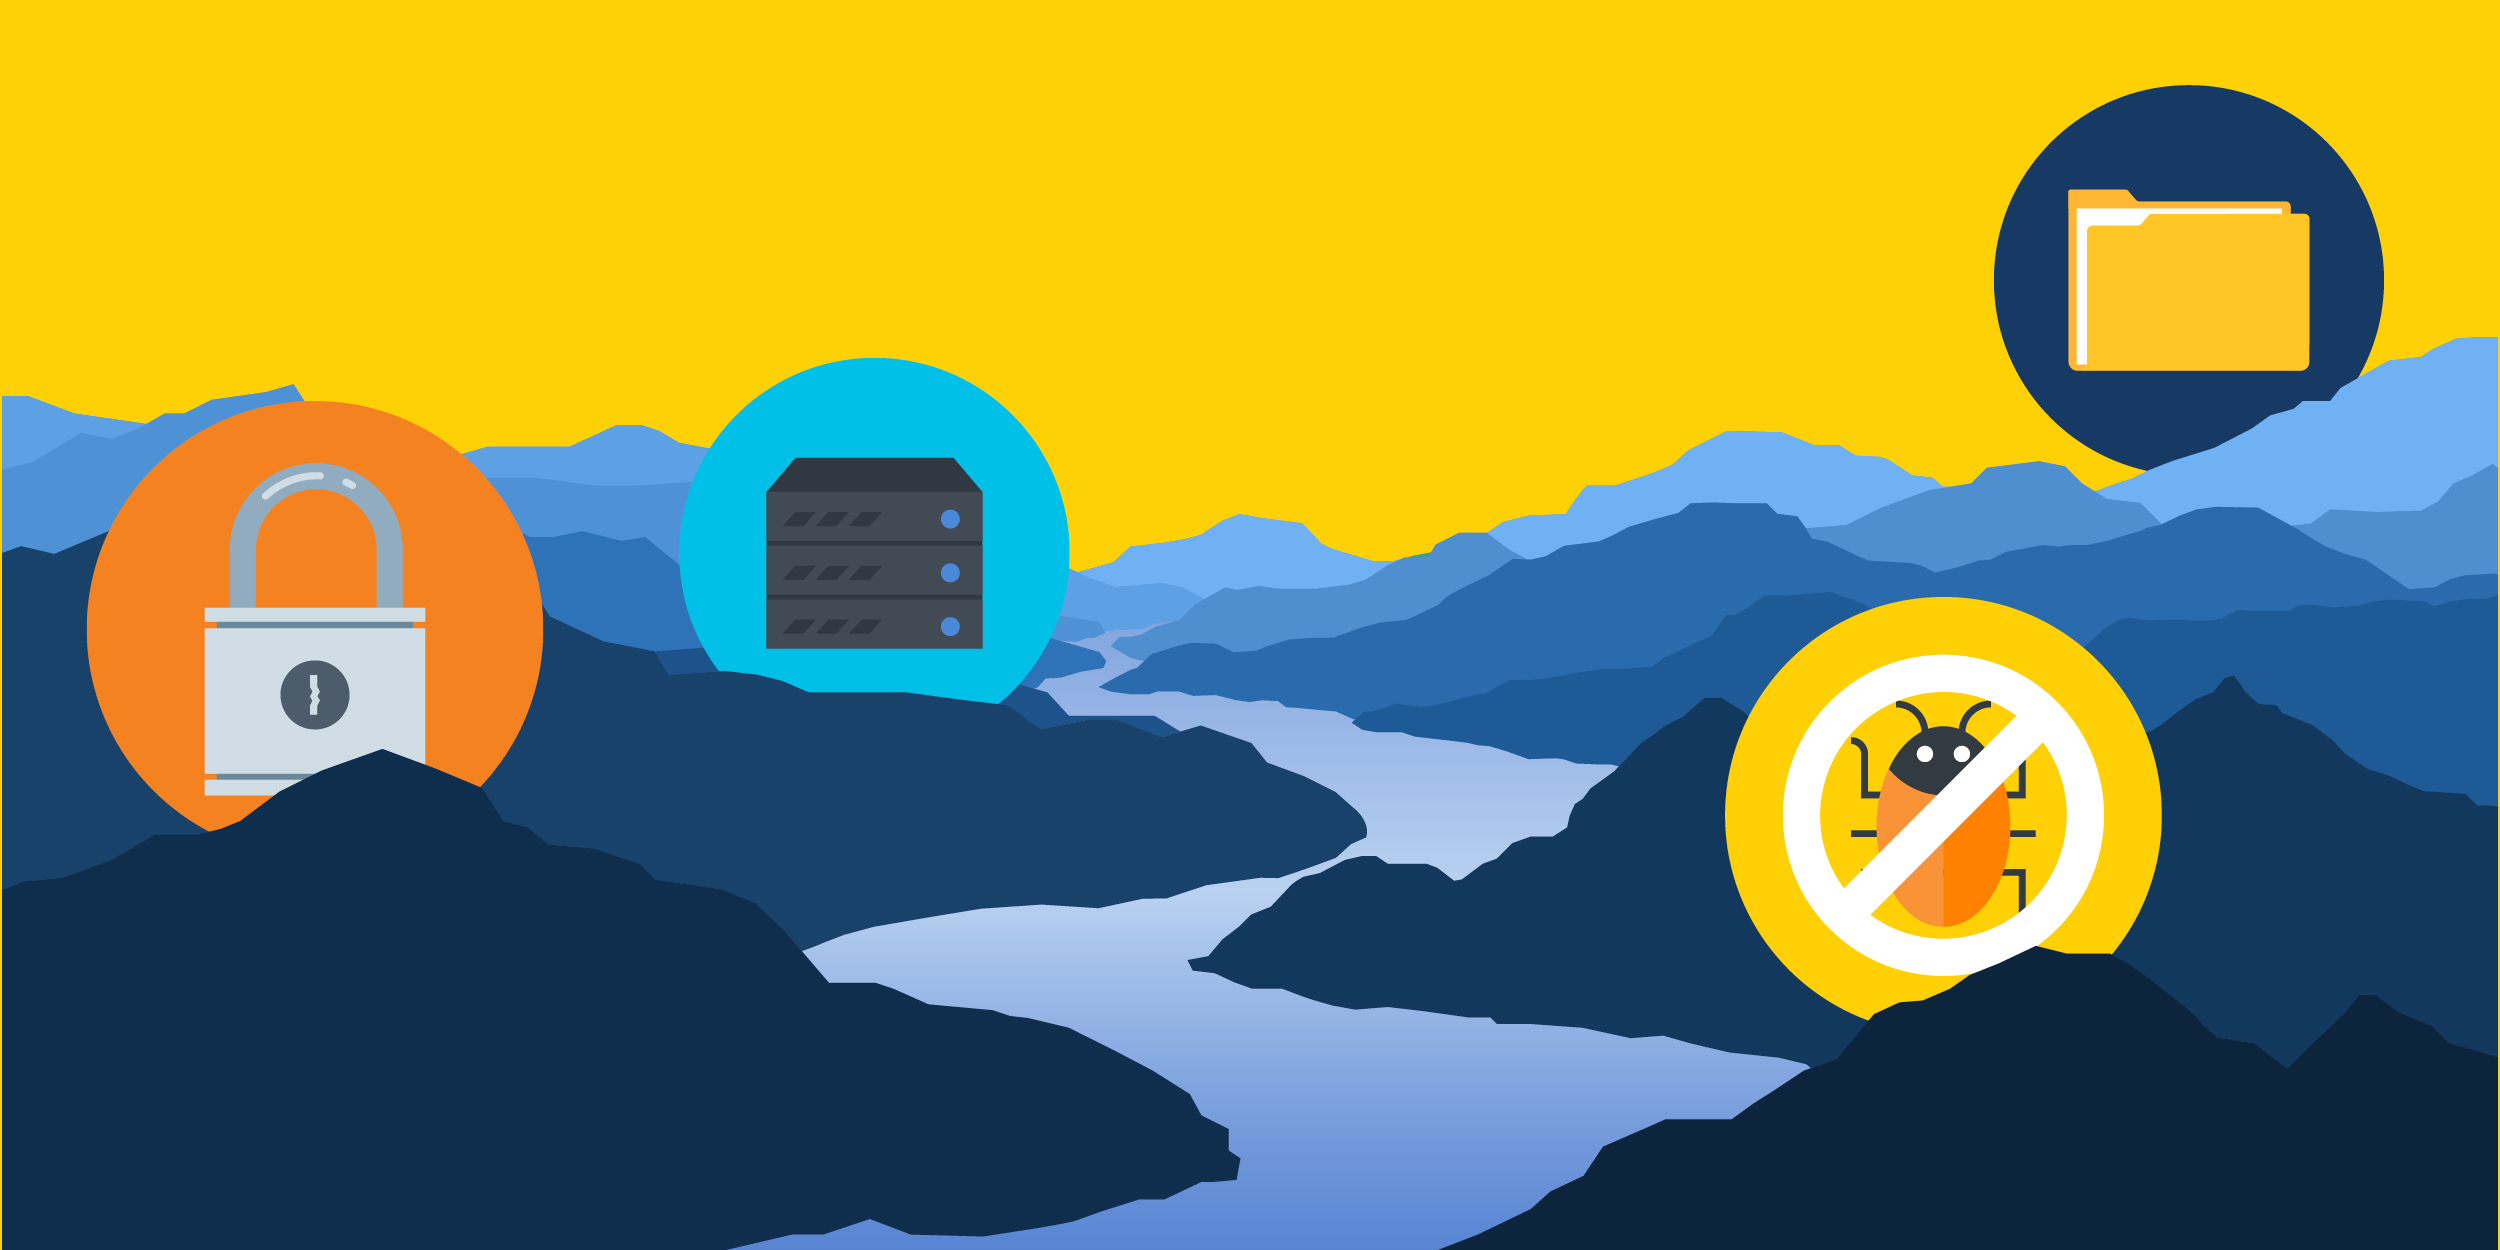 """an illustration of a river with icons of a folder, a server, a link, and a """"no bugs"""" sign along its banks symbolizing how Symantec has increased data security for WOTR and therefore contributed to watershed protection"""